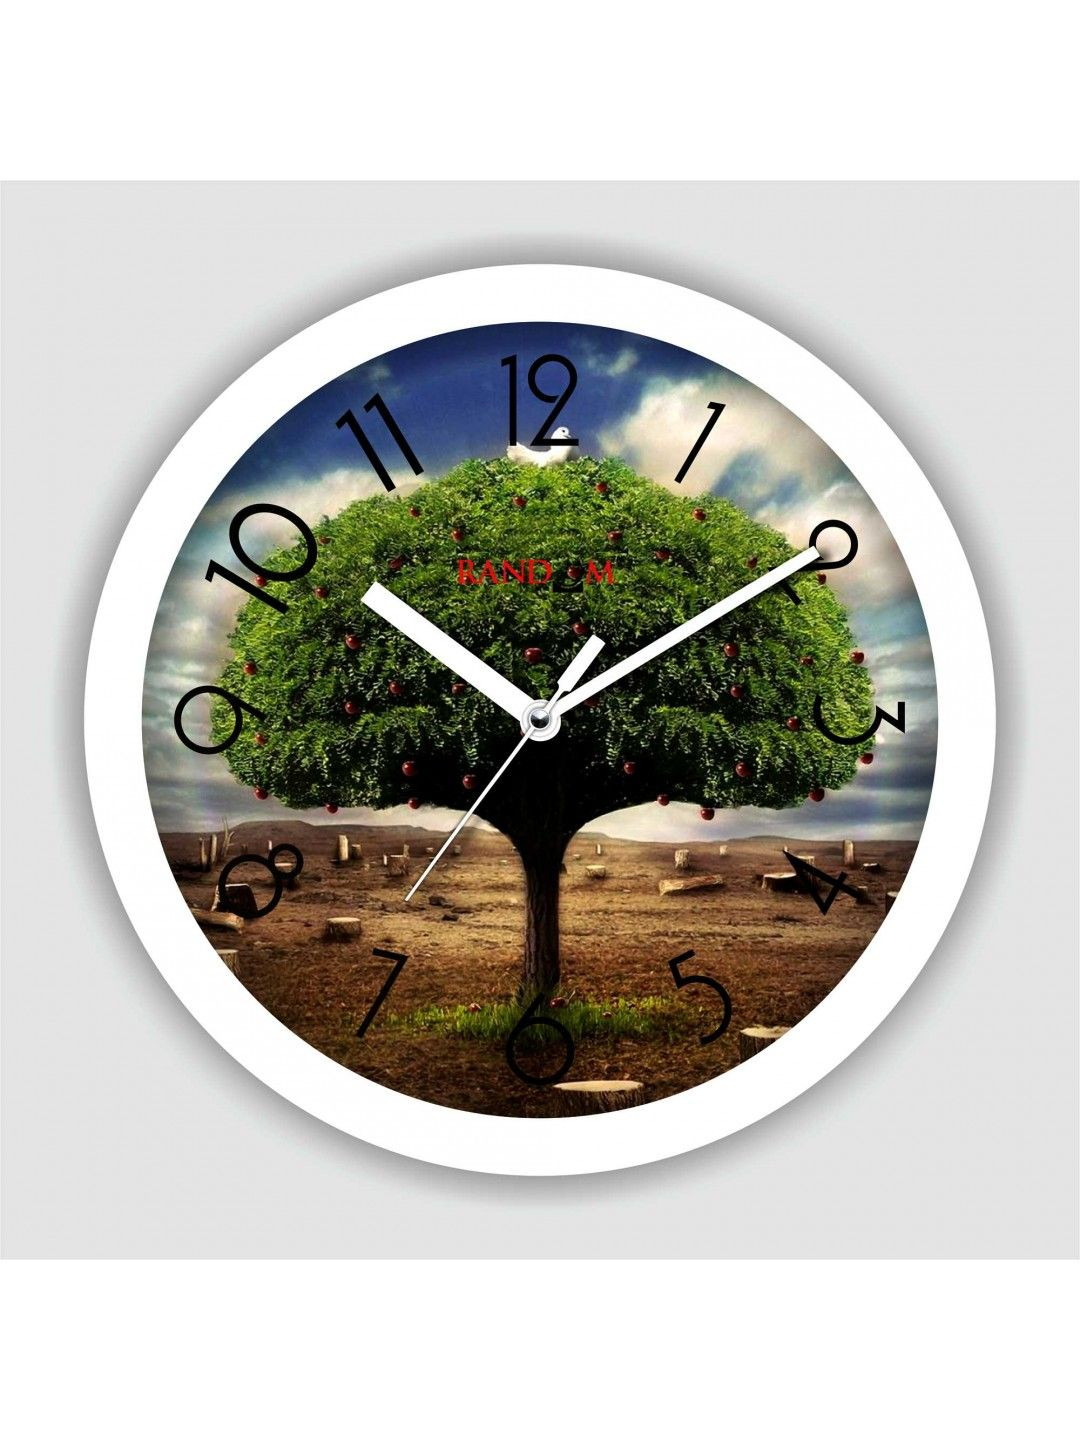 Colorful wooden designer analog wall clock buy online colorful colorful wooden designer analog wall clock buy online colorful wooden designer analog wall clock at best price in india colorful wooden rings to suit your amipublicfo Gallery